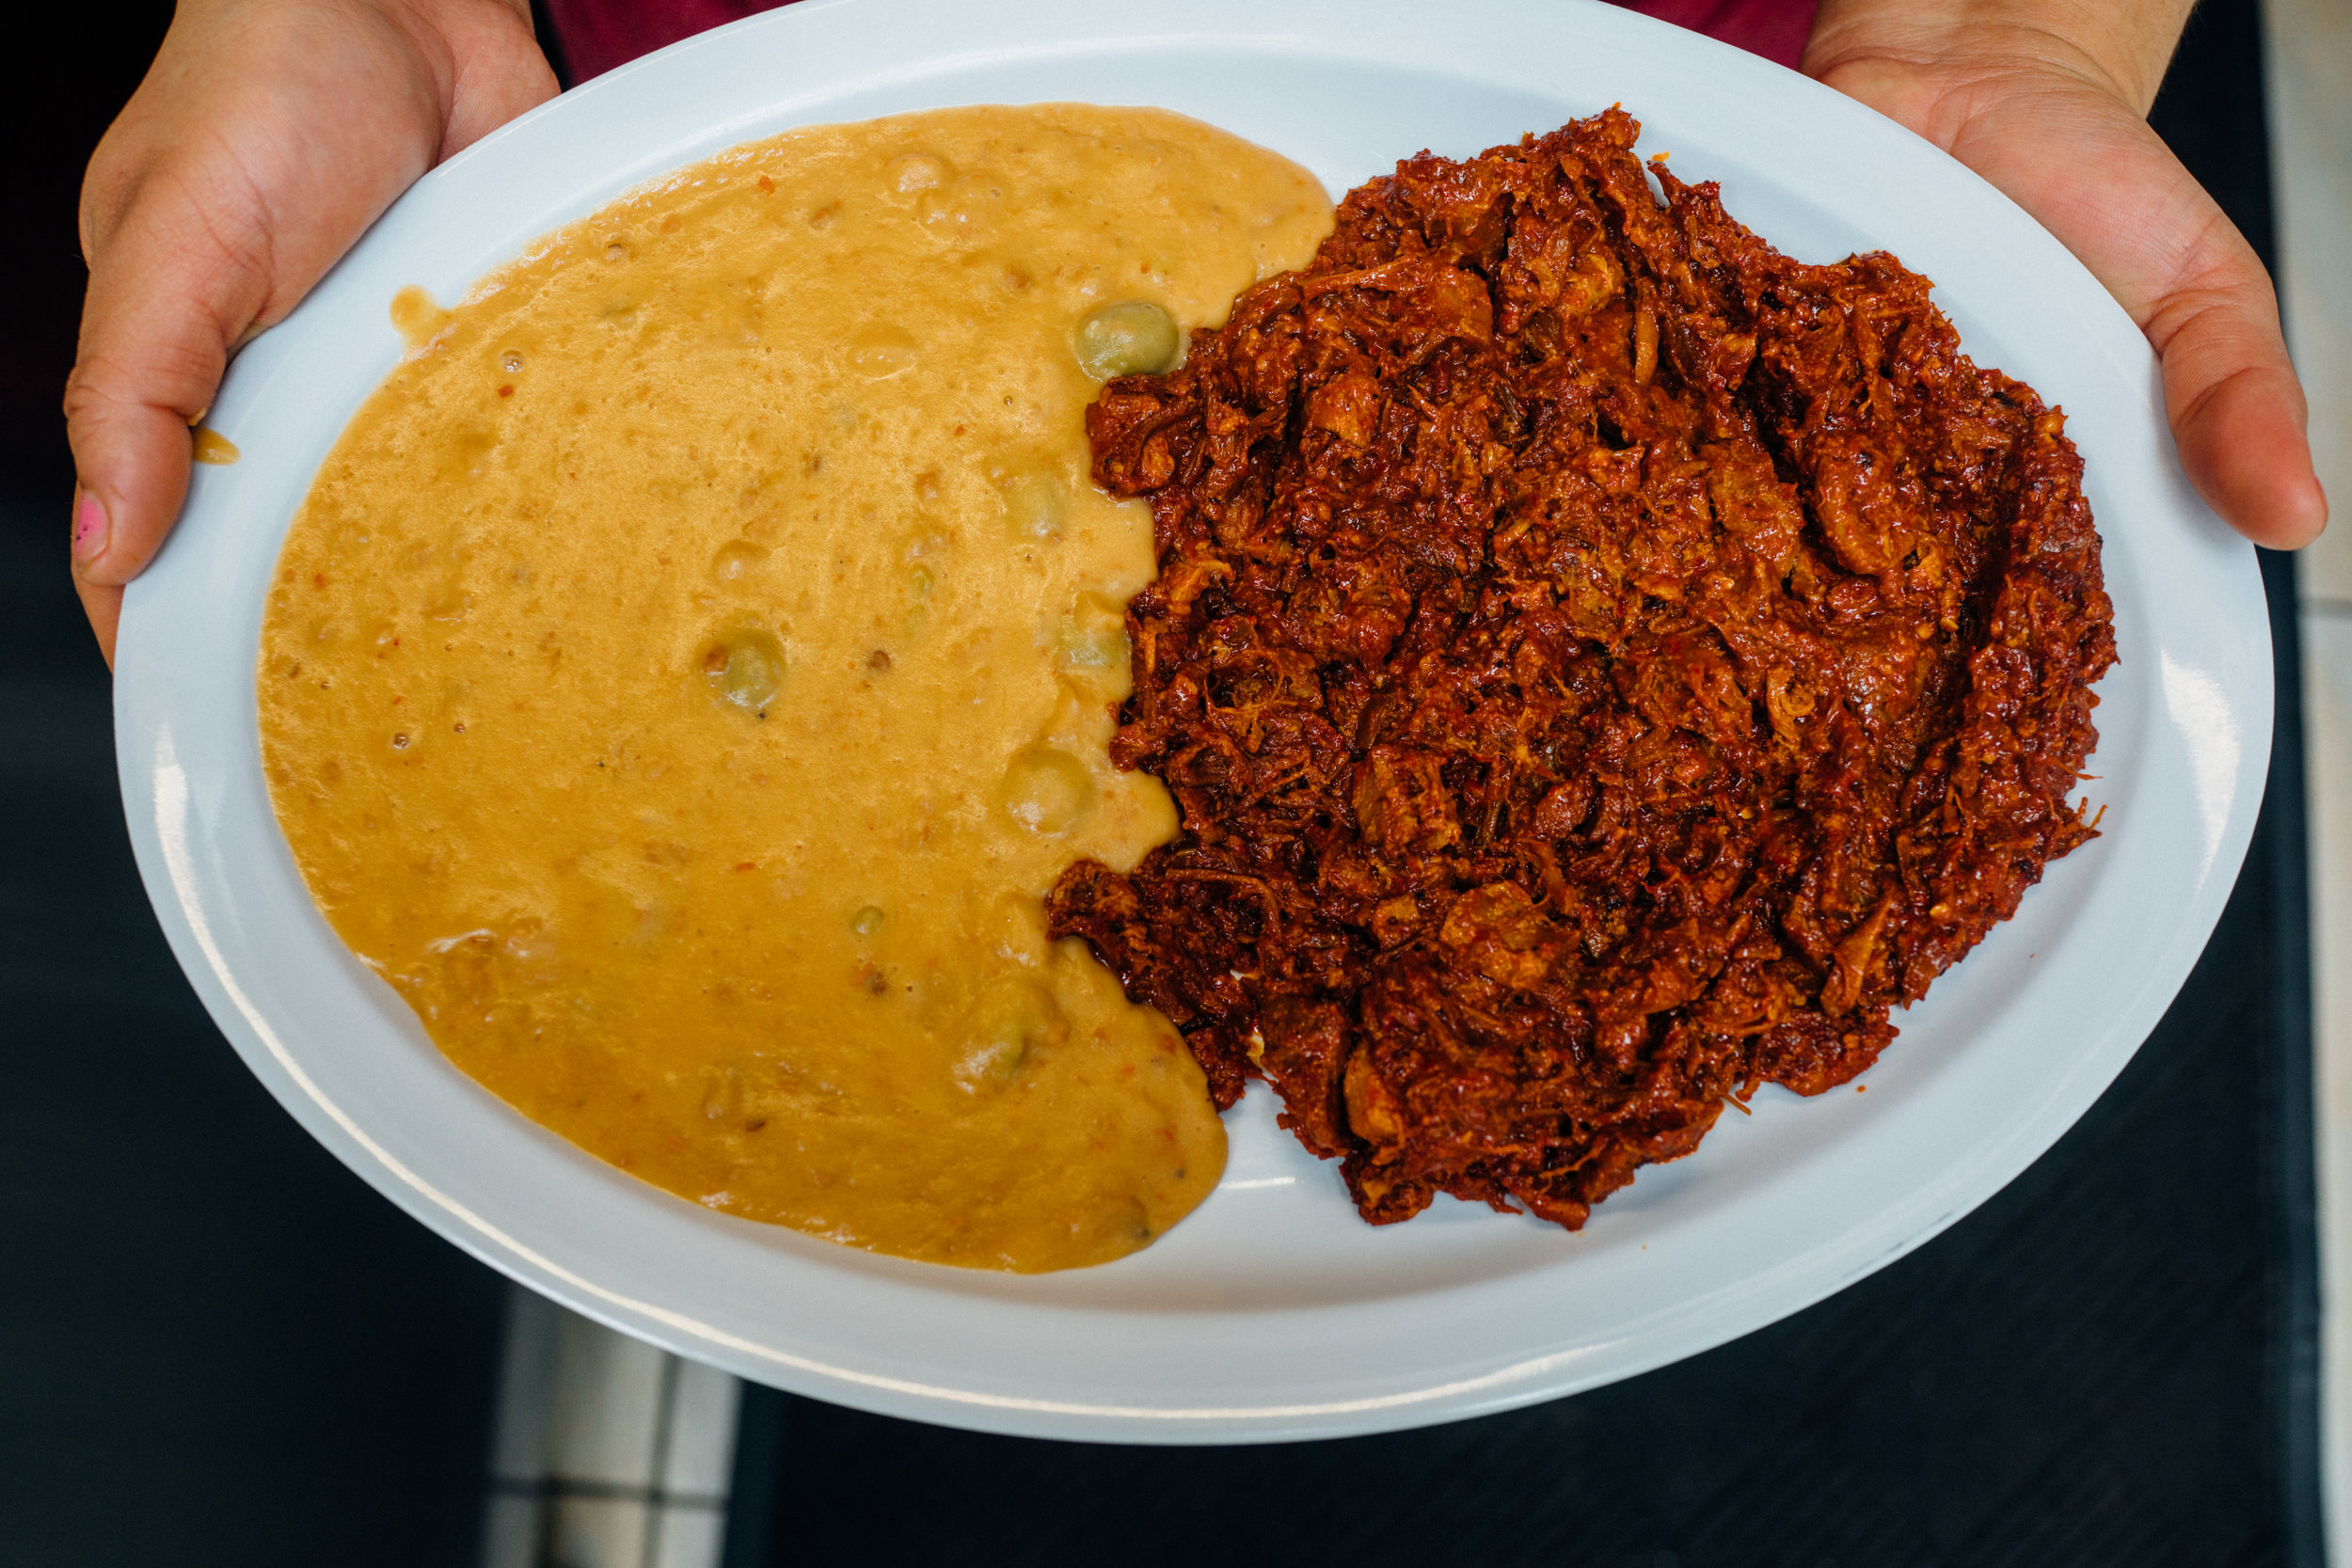 Chilorio at Taqueria El Sinaloense in Queens, New York